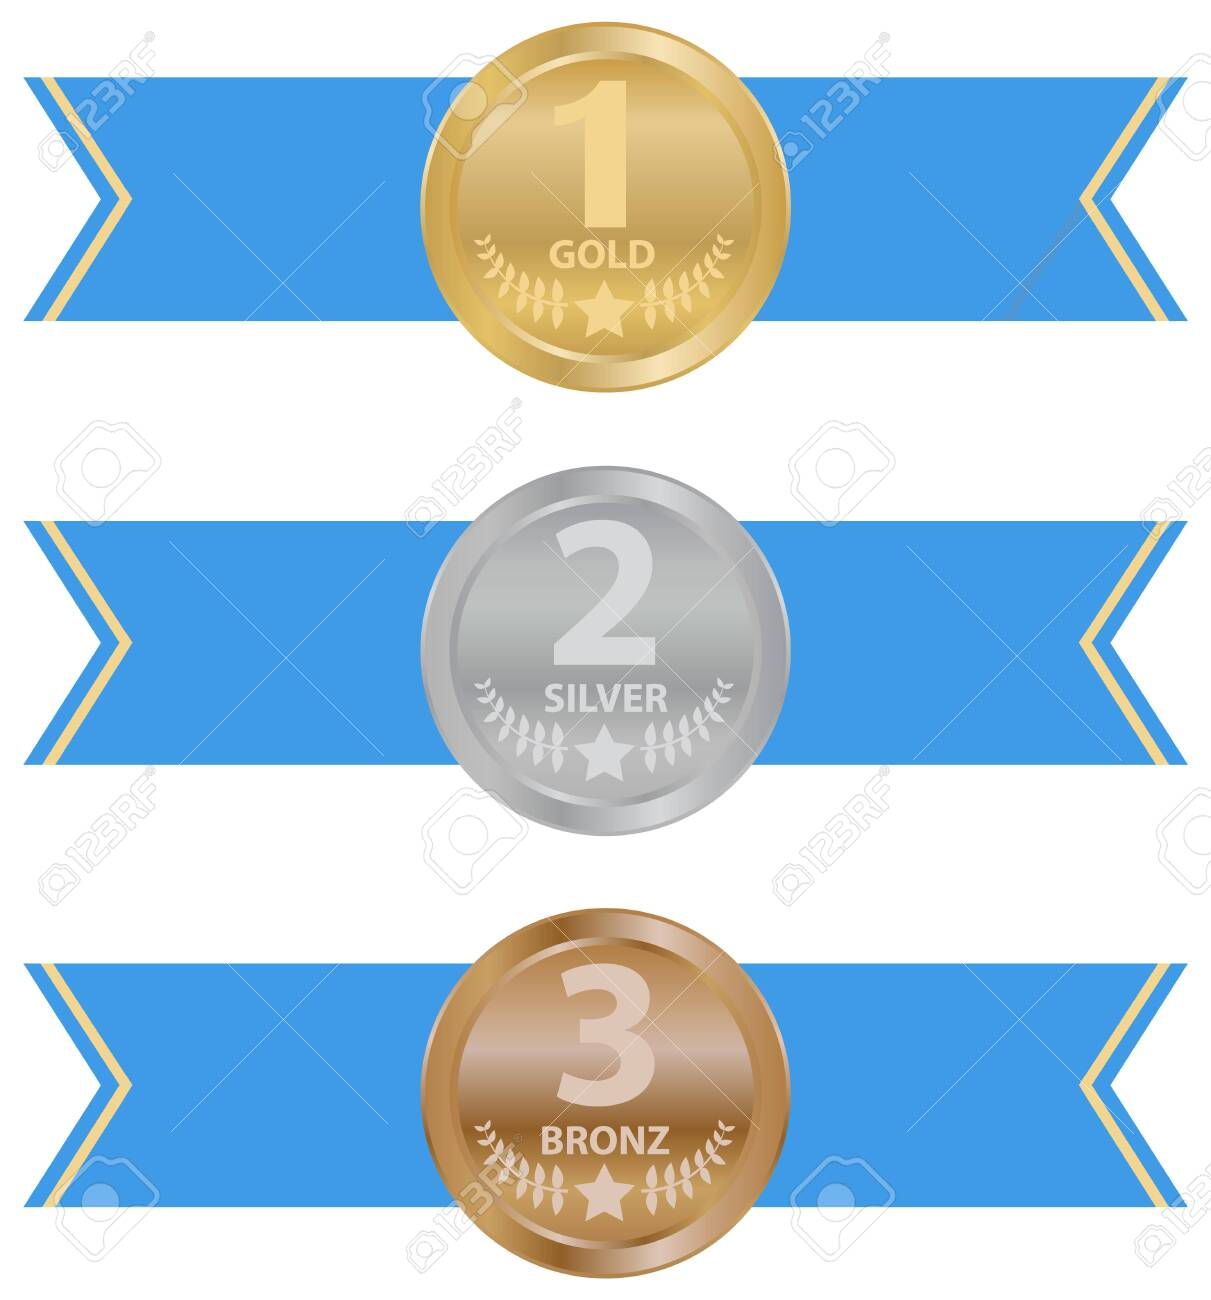 Sports medal, trophy. Gold, silver and bronze sports medal with ribbons. Vector illustration. Vector. - 151138497